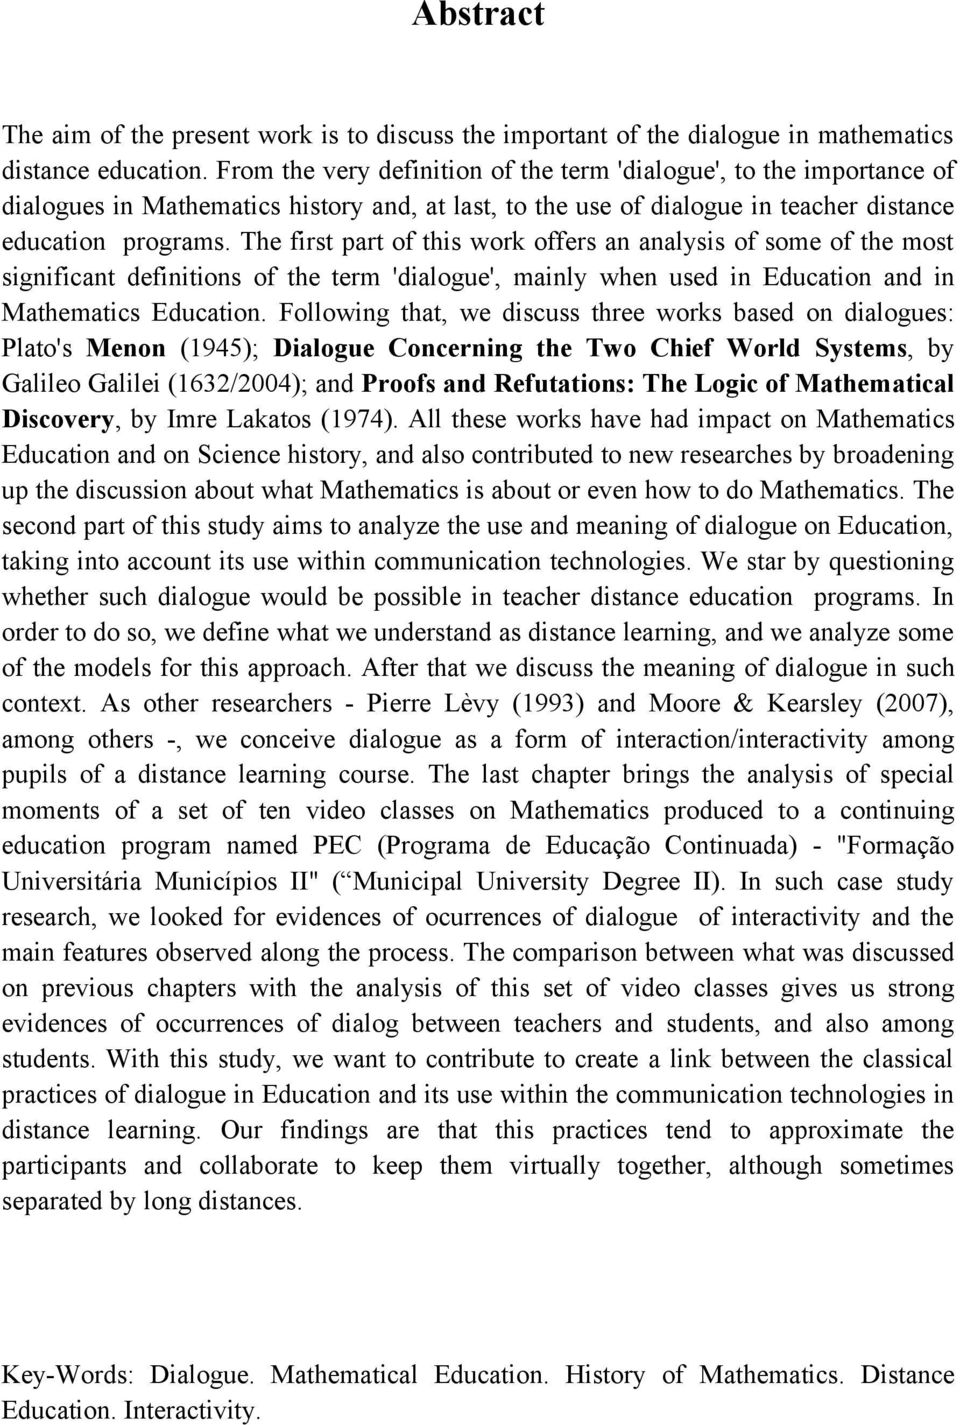 The first part of this work offers an analysis of some of the most significant definitions of the term 'dialogue', mainly when used in Education and in Mathematics Education.